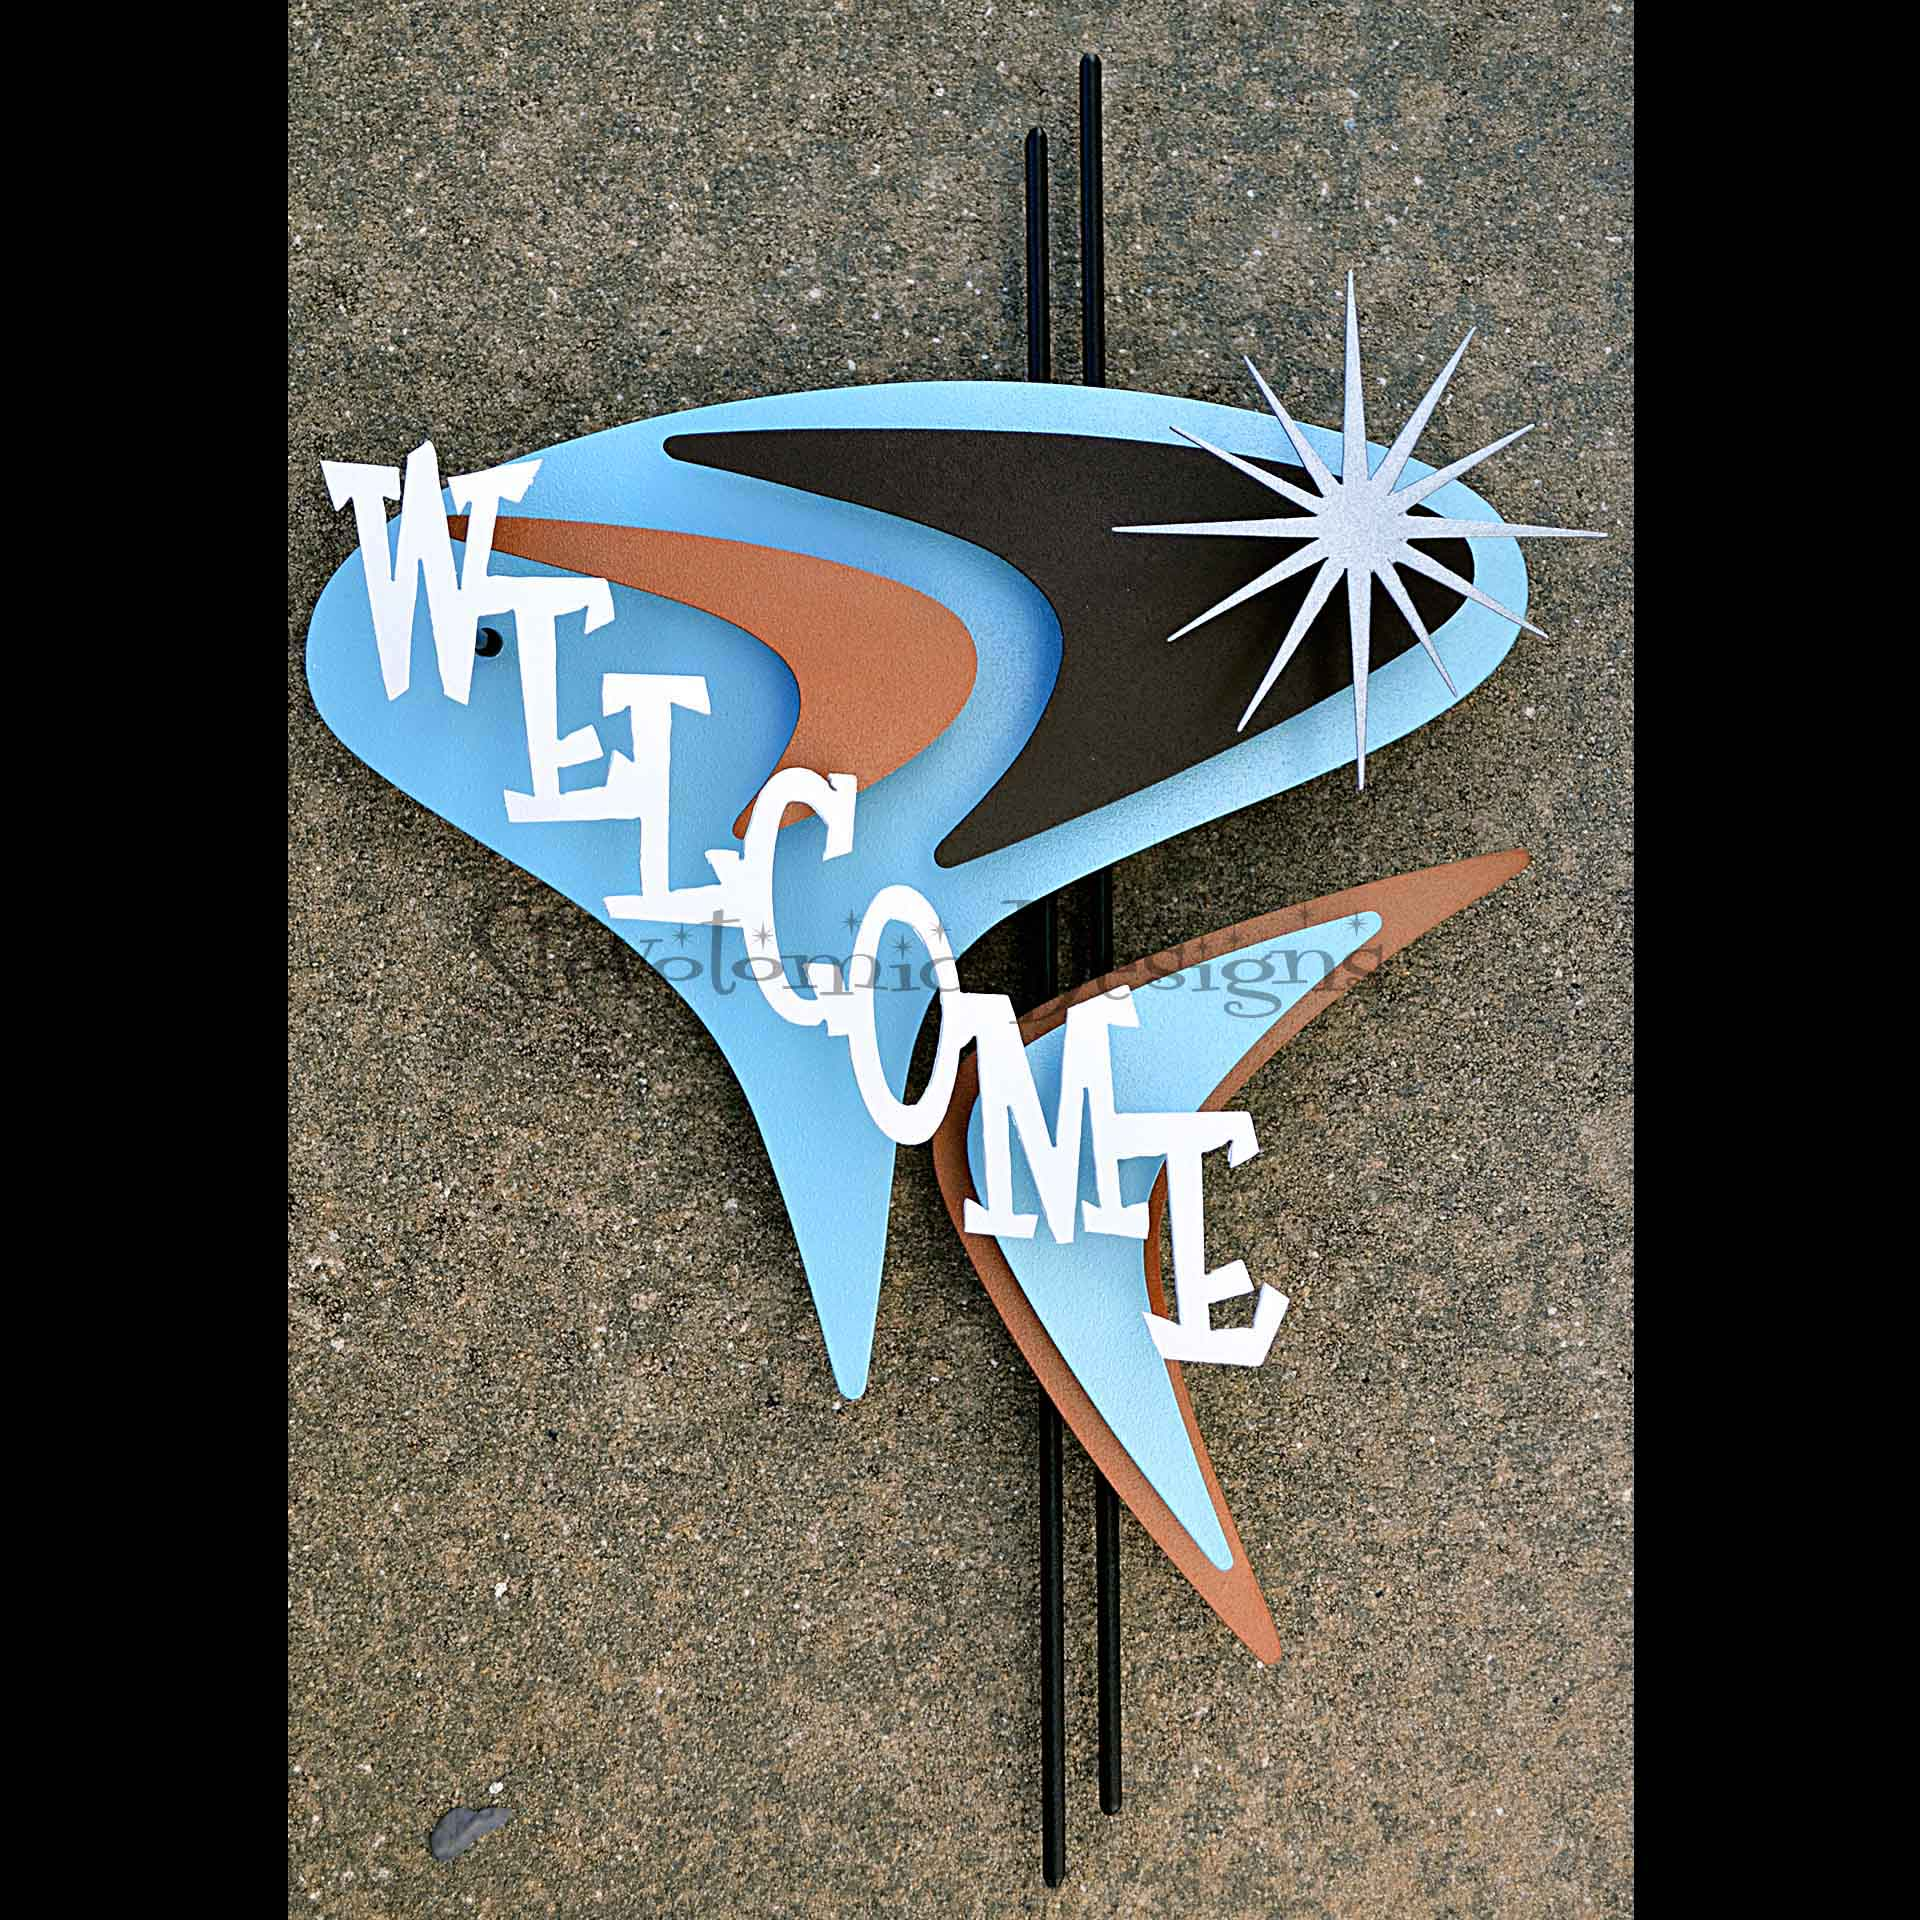 WELCOME-017-0007